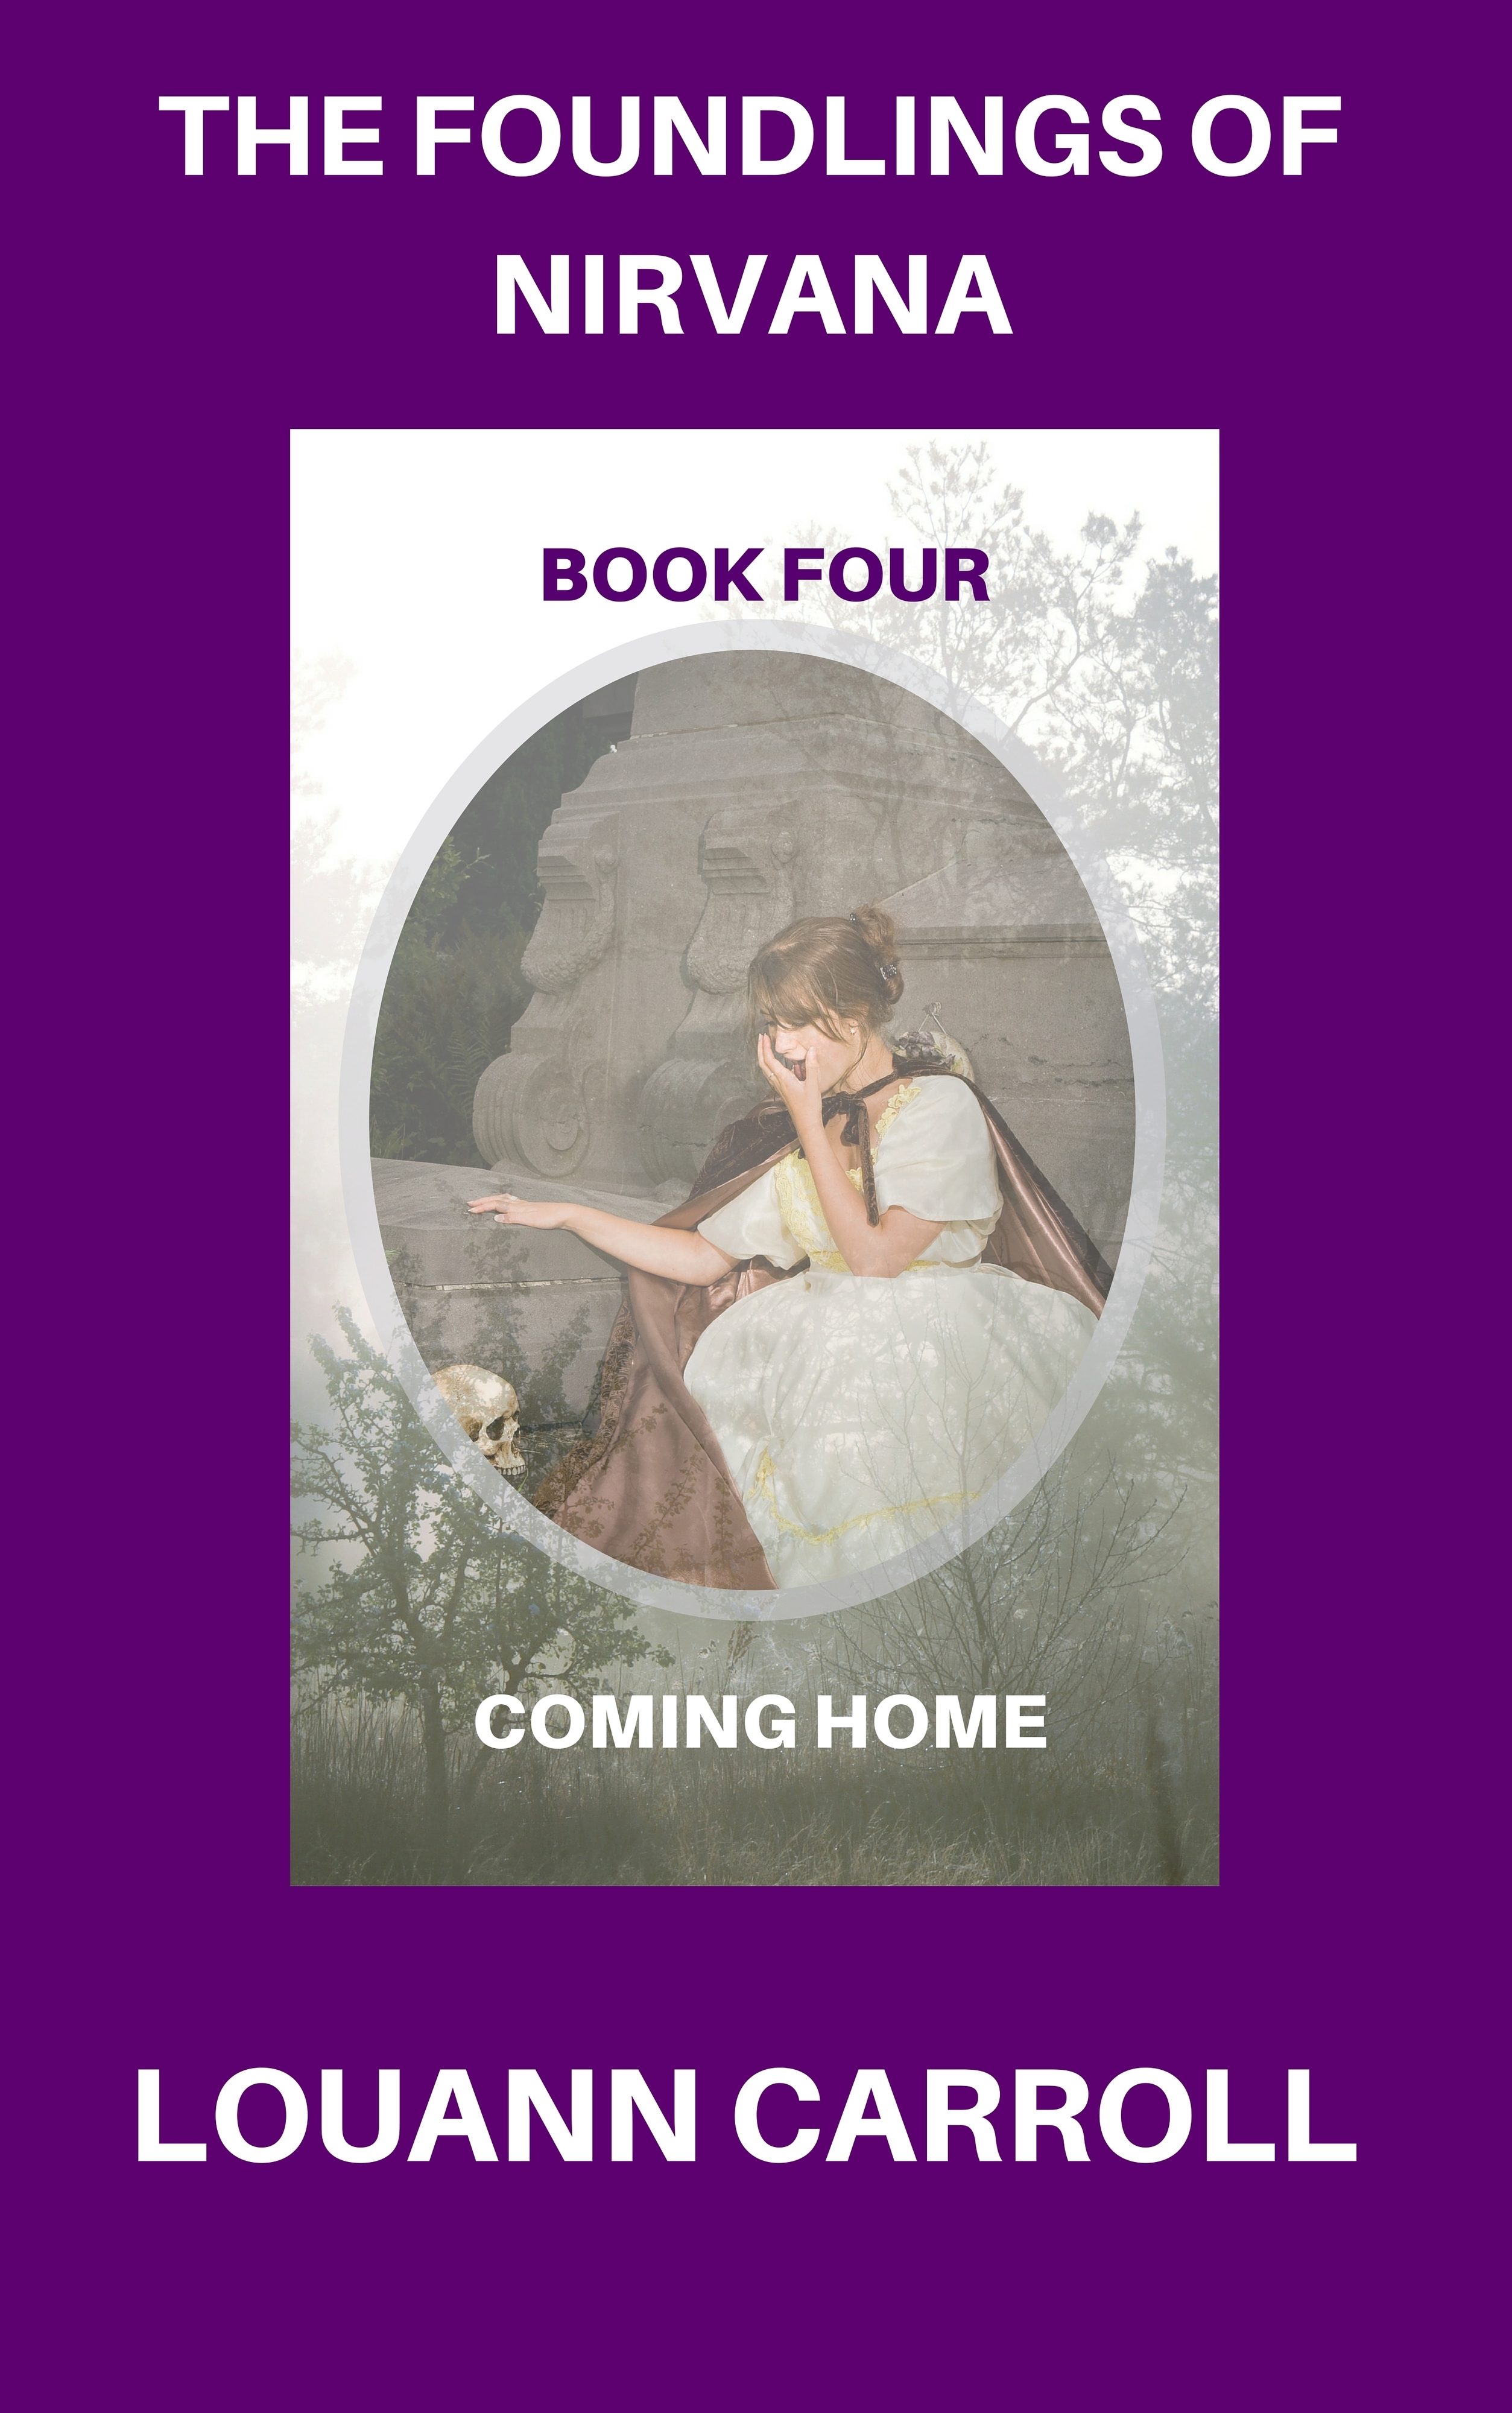 The Foundlings of Nirvana, Book Four, Coming Home Louann Carroll